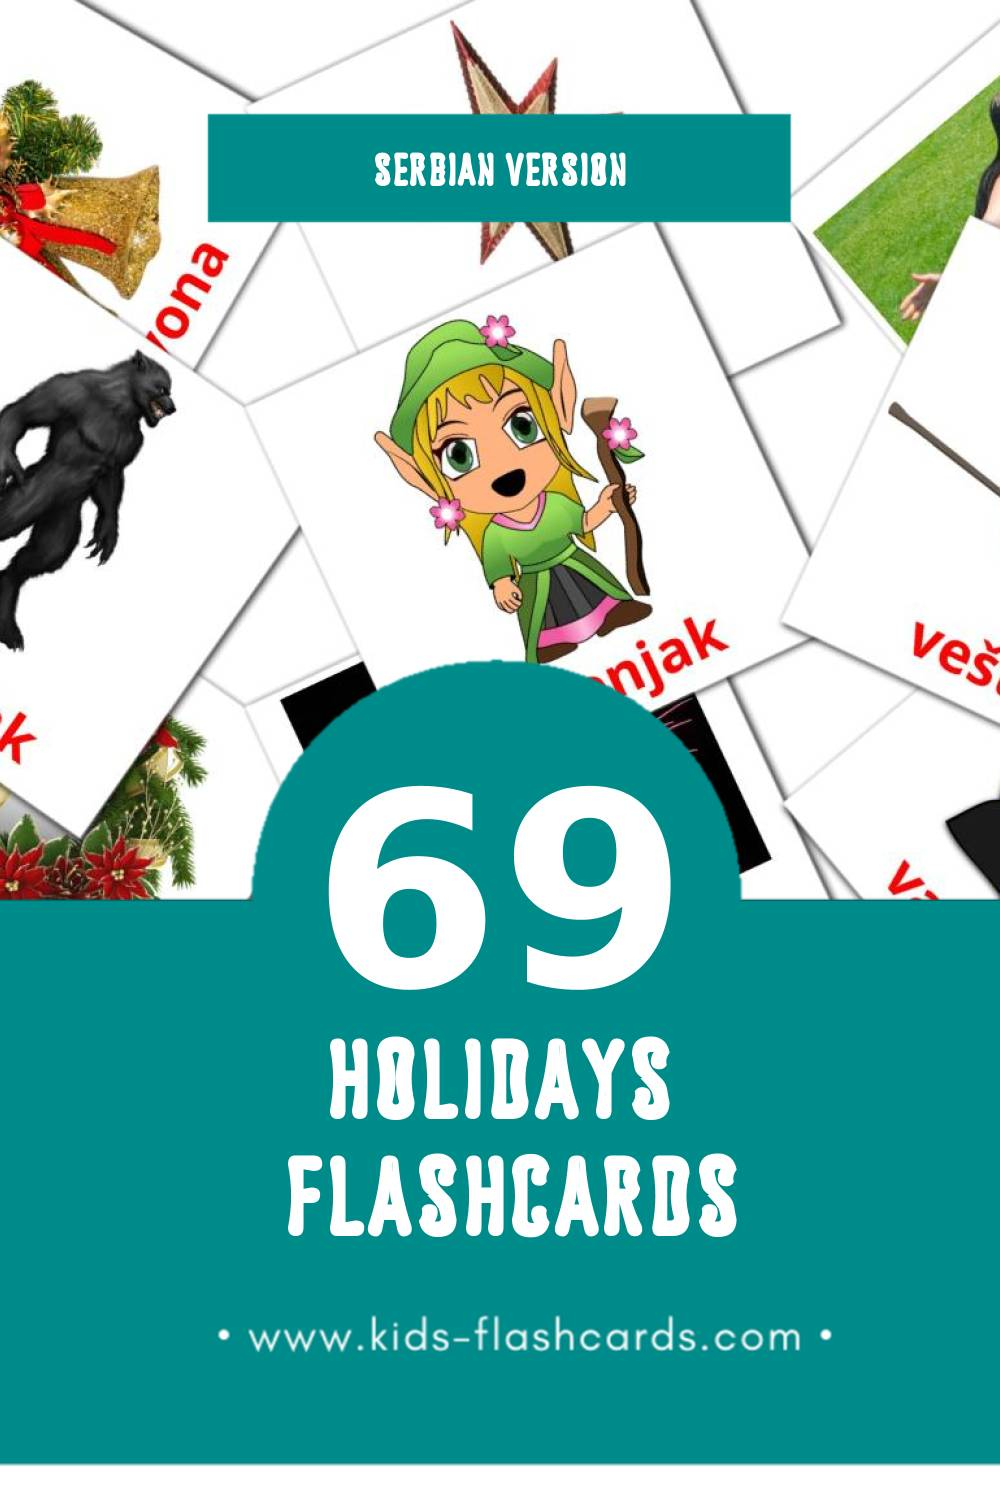 Visual Praznici Flashcards for Toddlers (69 cards in Serbian)